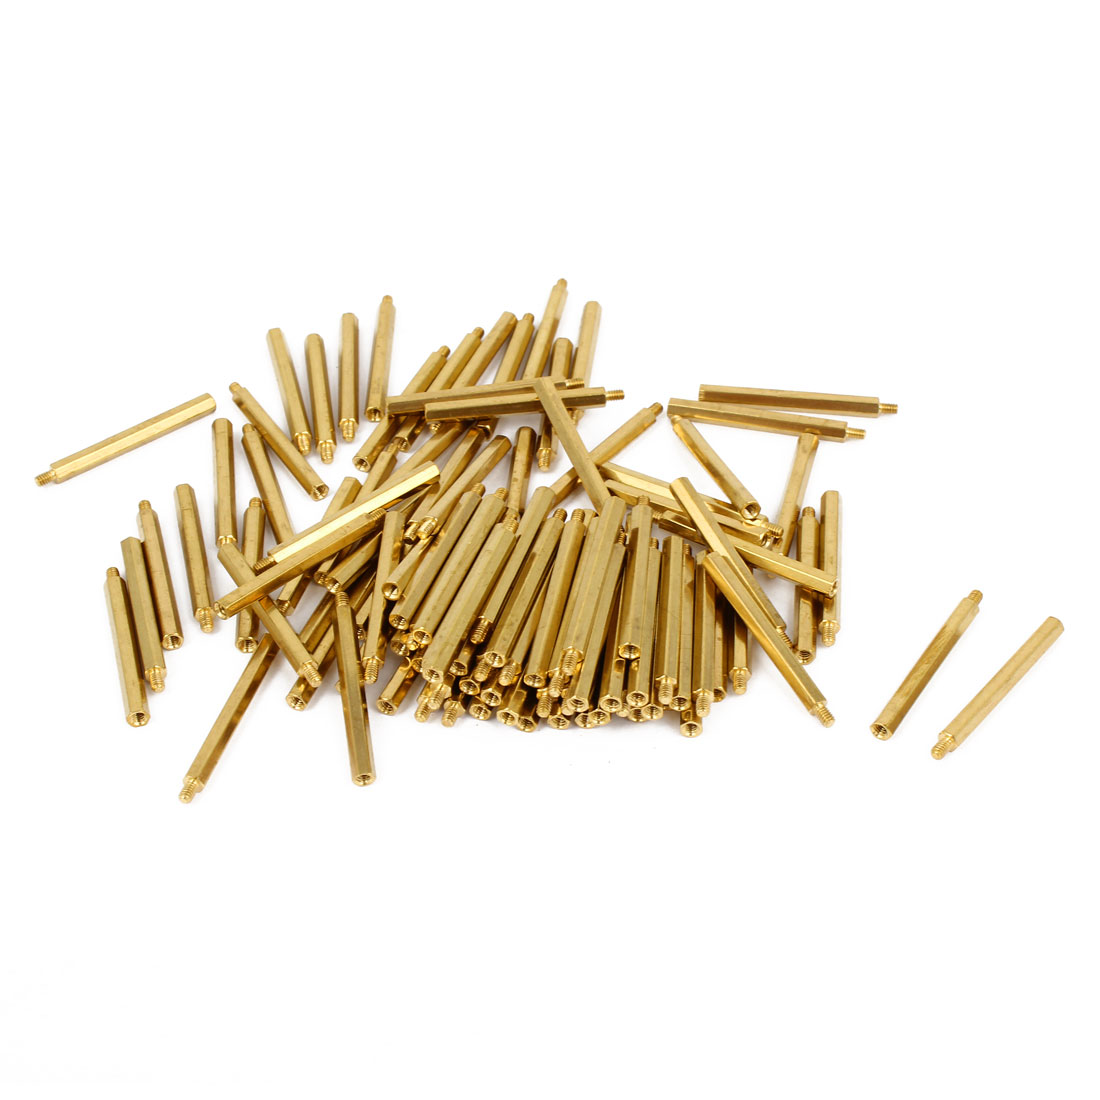 100 Pcs M2x28 Brass Column Male Hexagon Stand-off Spacers 3mm Thread Length